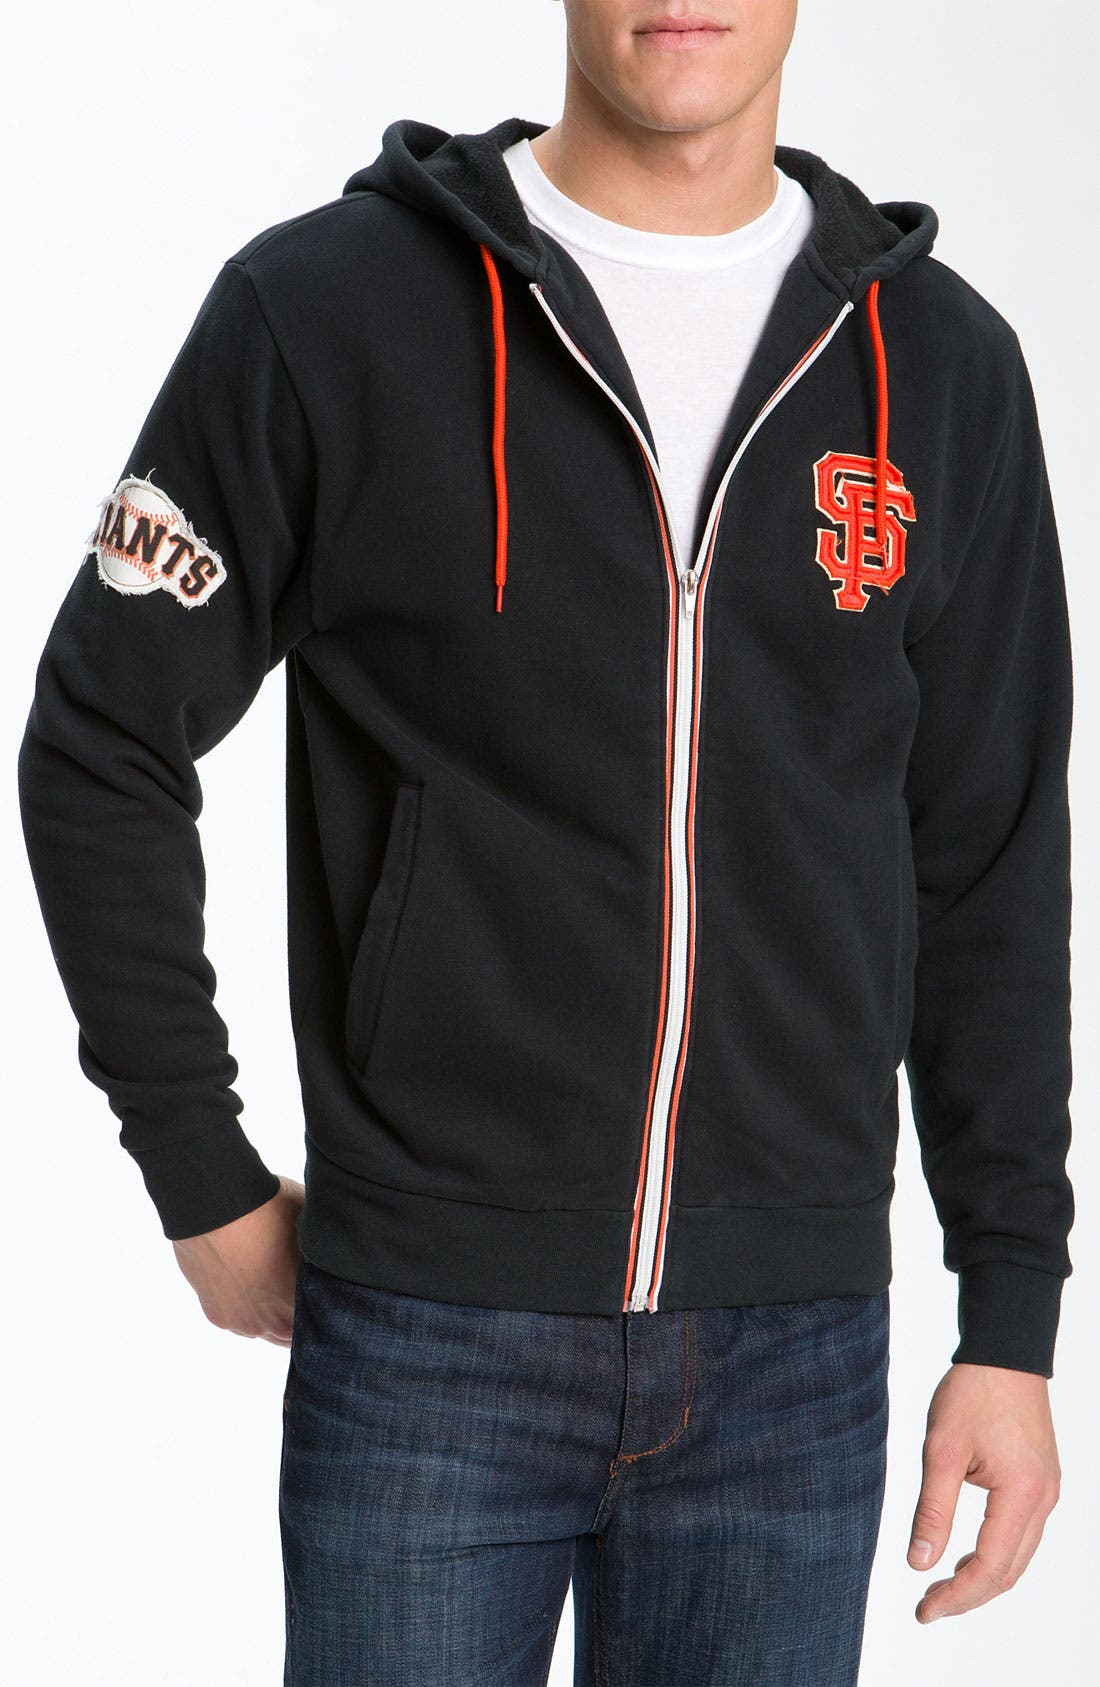 Main Image - Wright & Ditson 'San Francisco Giants' Hoodie